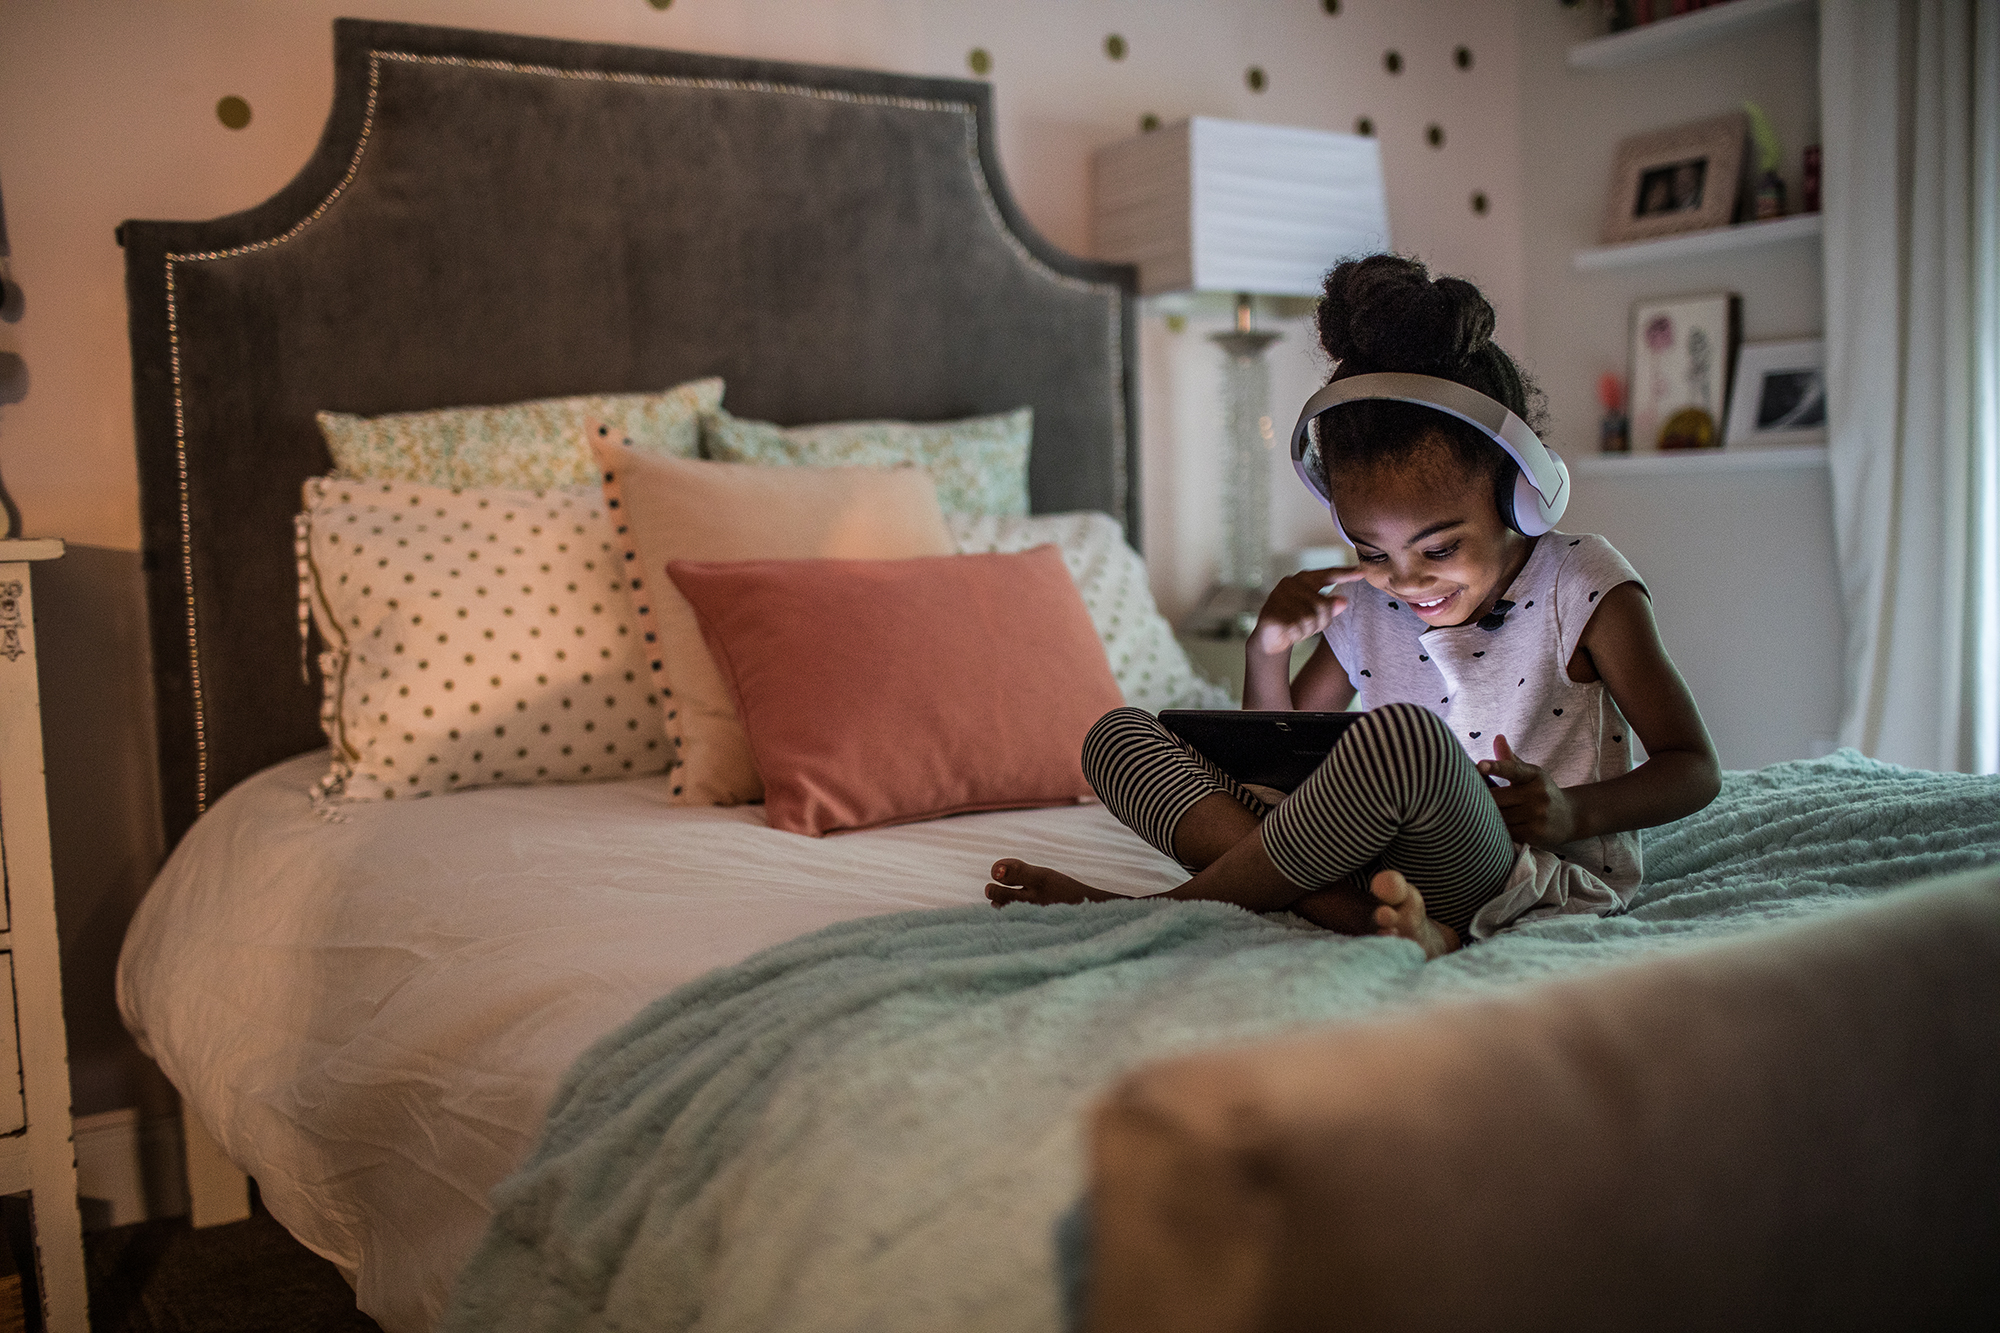 Young girl (6yrs) on couch using tablet